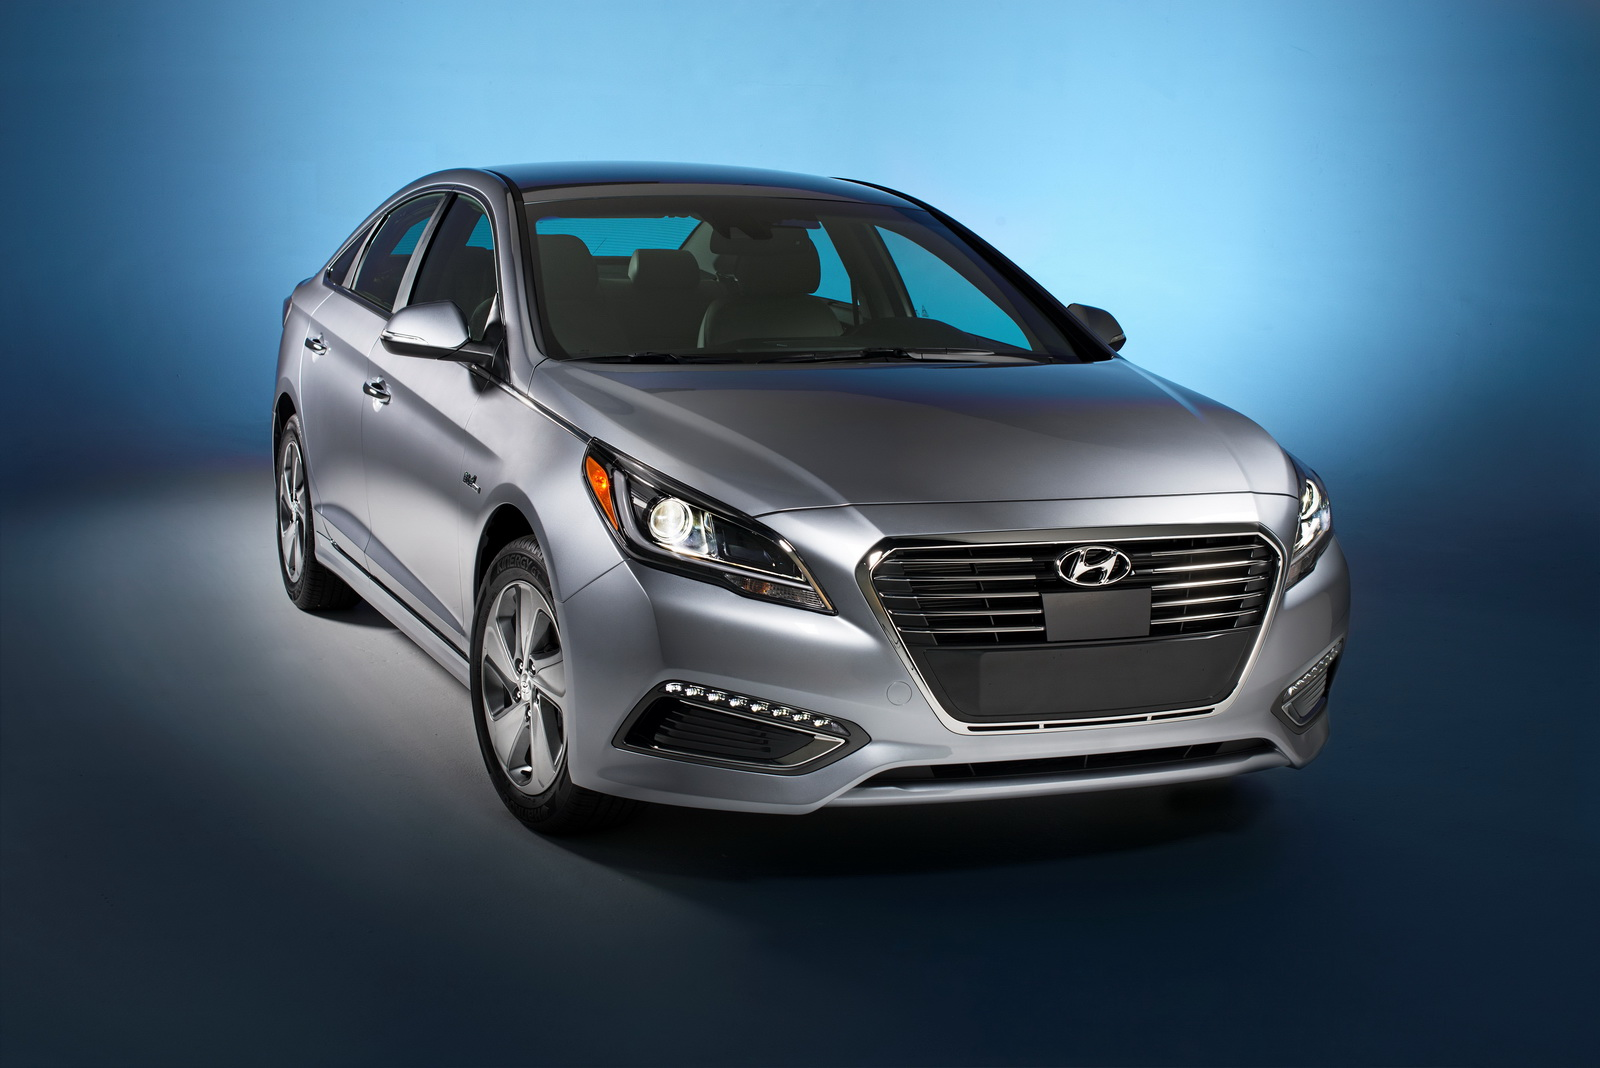 naias detroit 2015 2016 hyundai sonata plug in hybrid motoroids. Black Bedroom Furniture Sets. Home Design Ideas